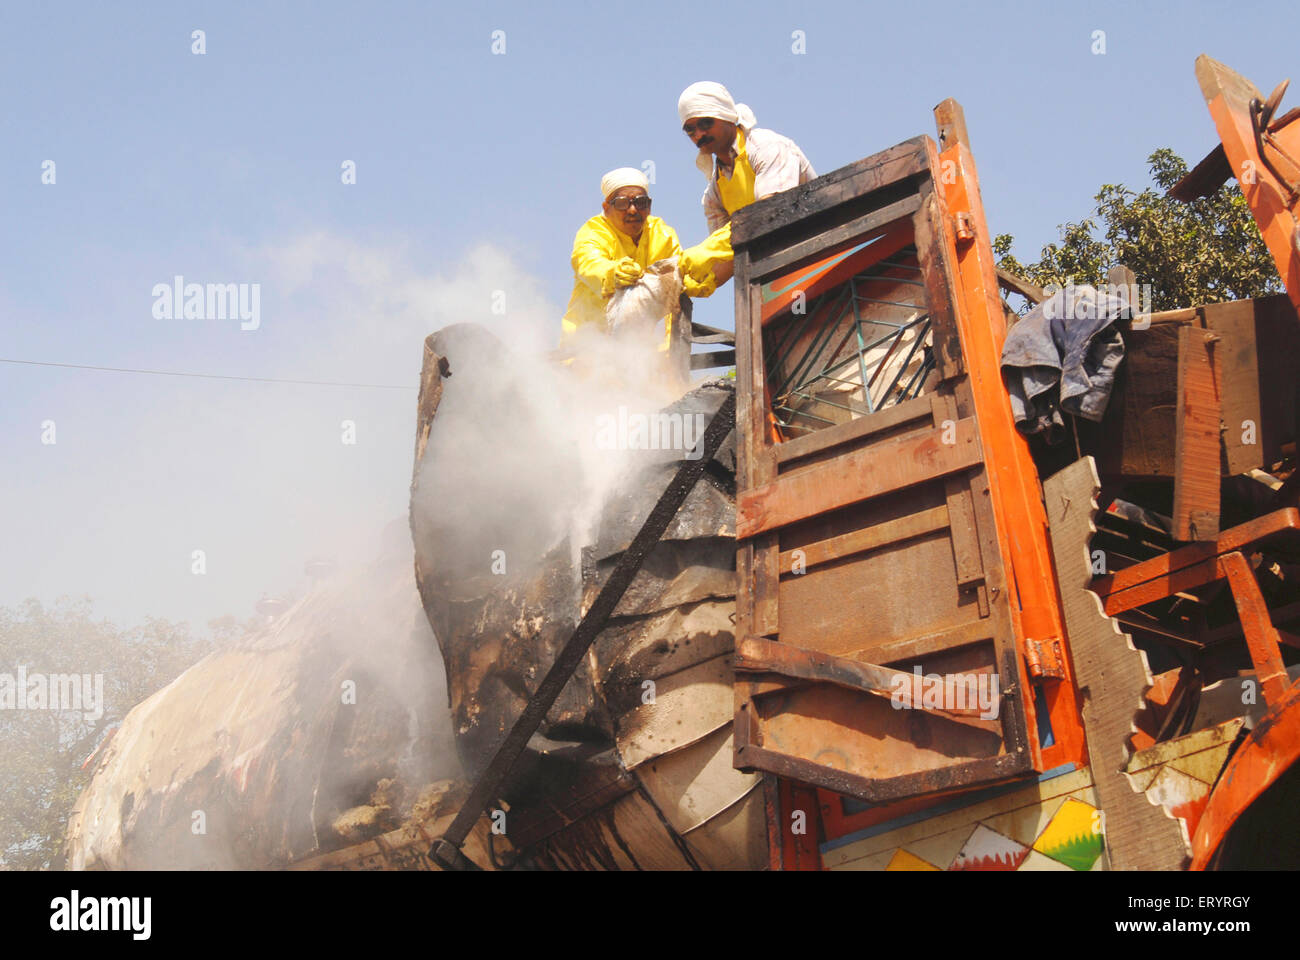 Fire department control chemical leak to prevent damage due to truck accident at Panvel ; Maharashtra ; India - Stock Image